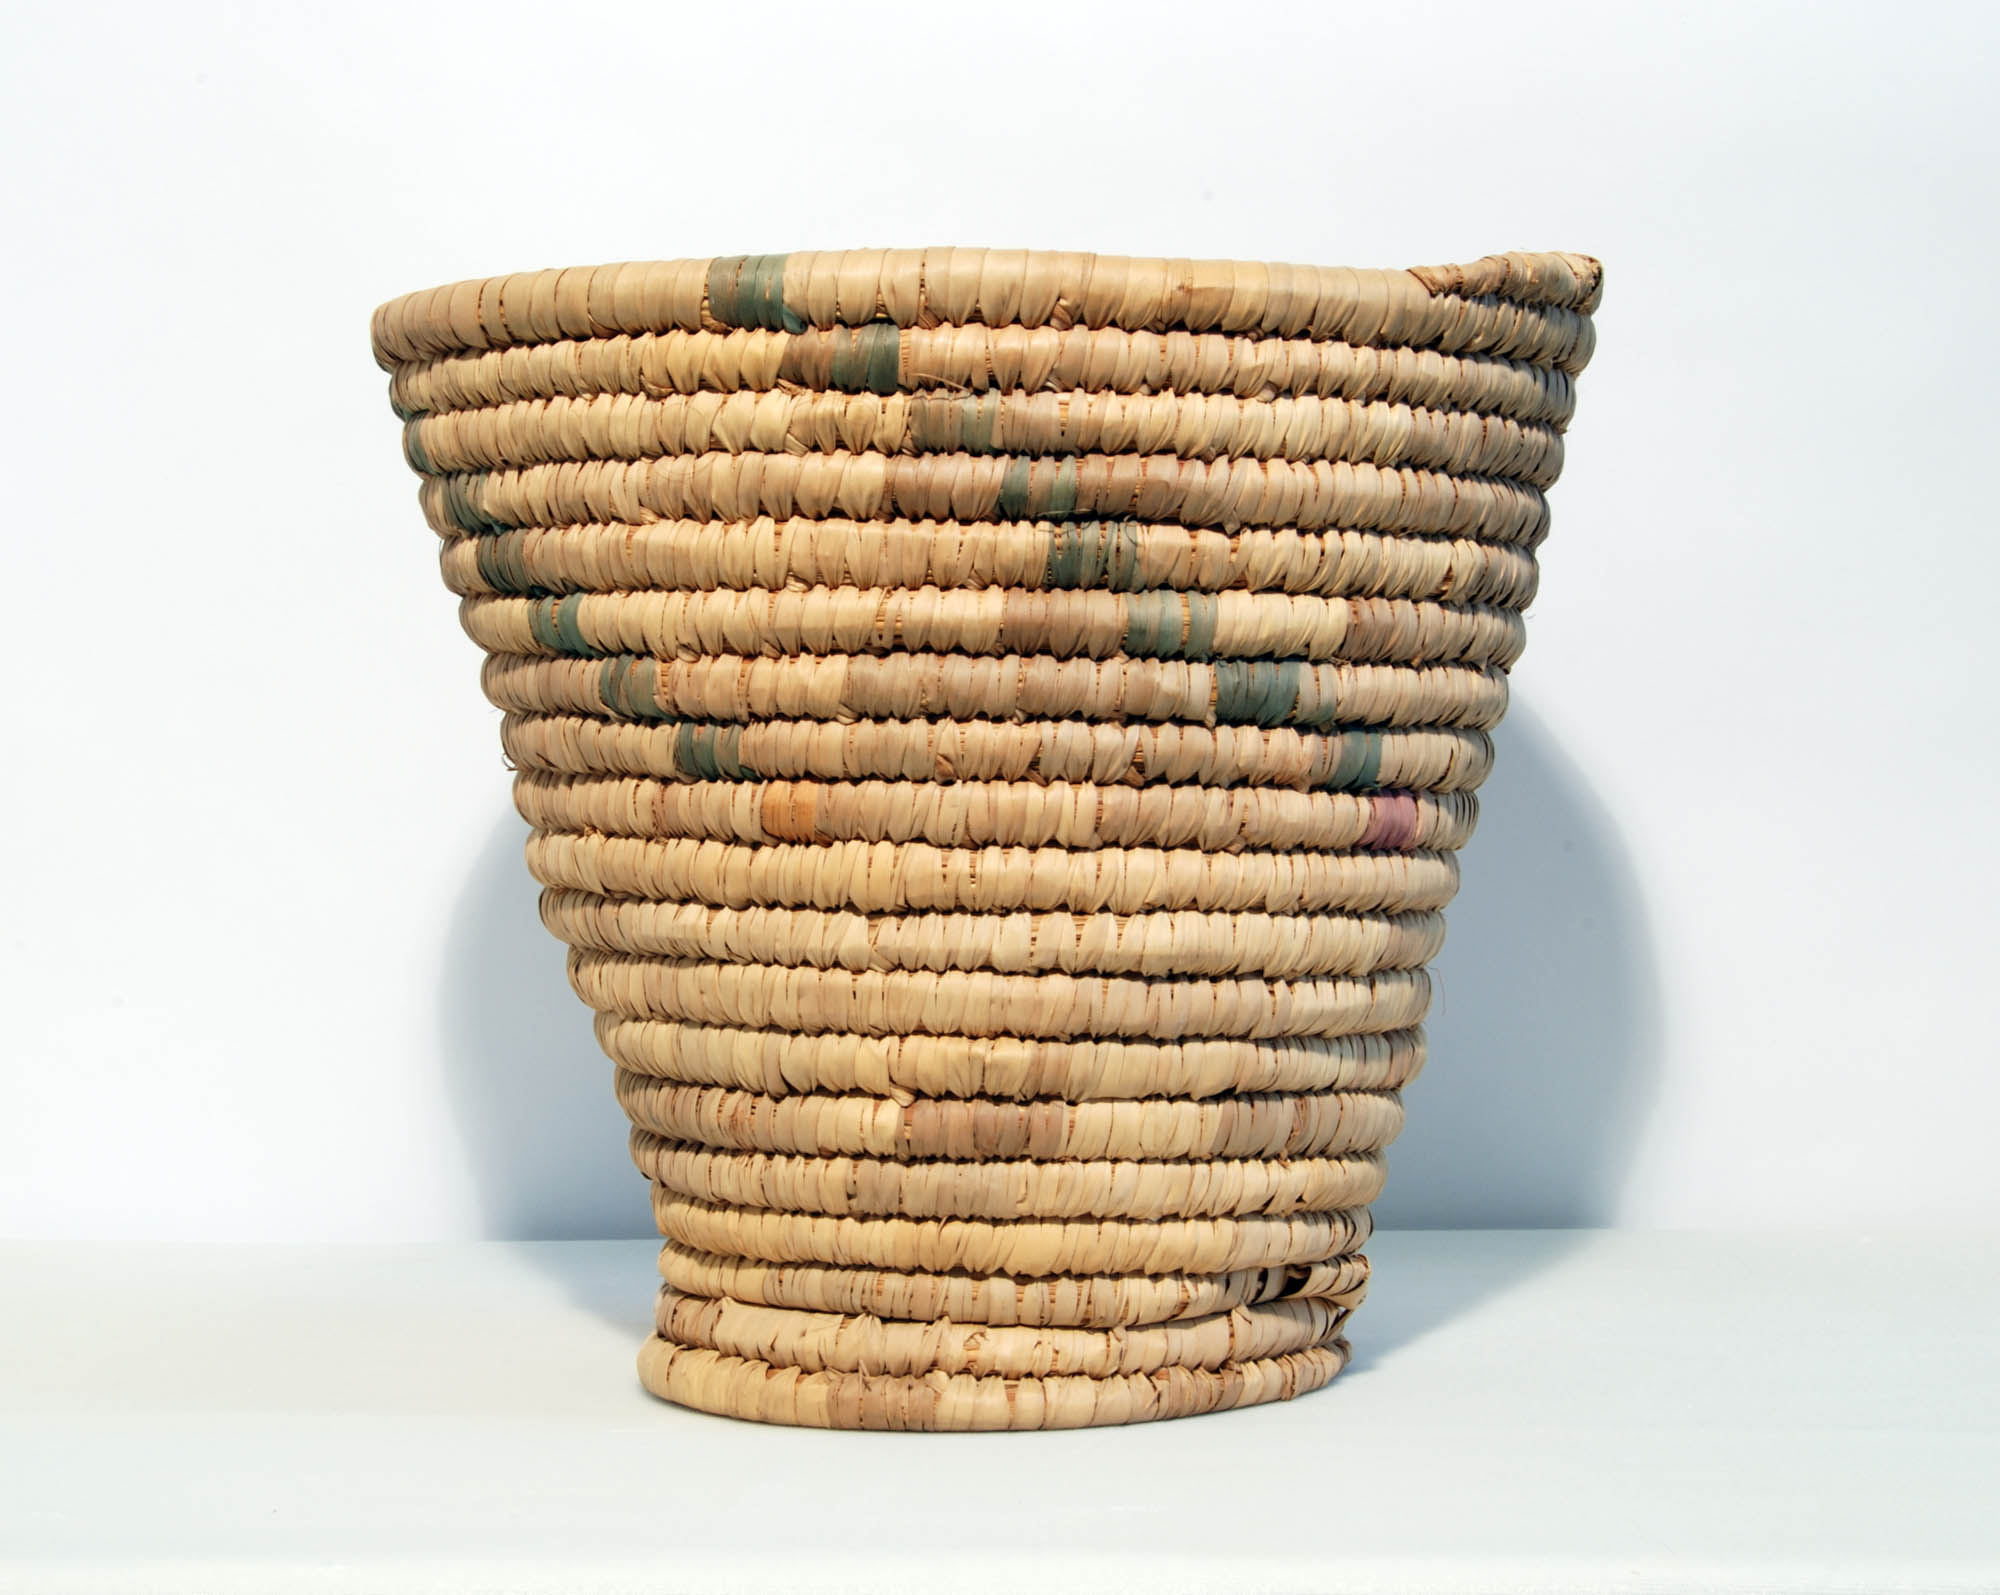 Coiled grass basket